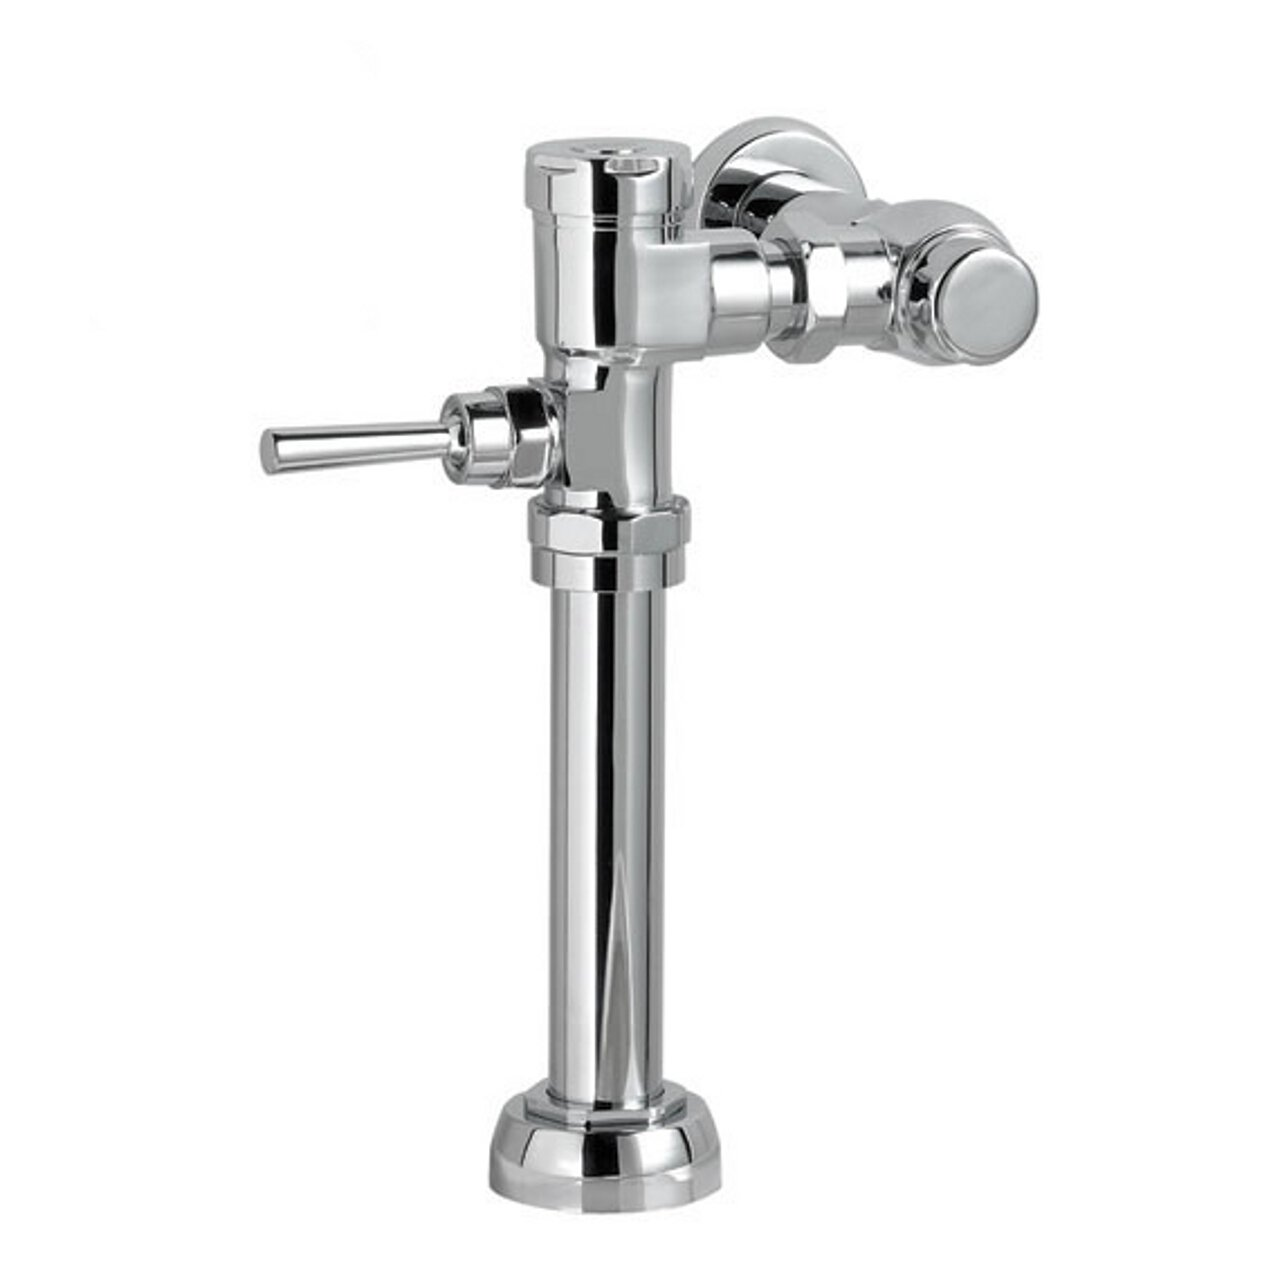 American Standard 6047.121.002 Manual Flatwise 1.28 GPF Flush Valve, Chrome  - Urinal Flush Valves - Amazon.com